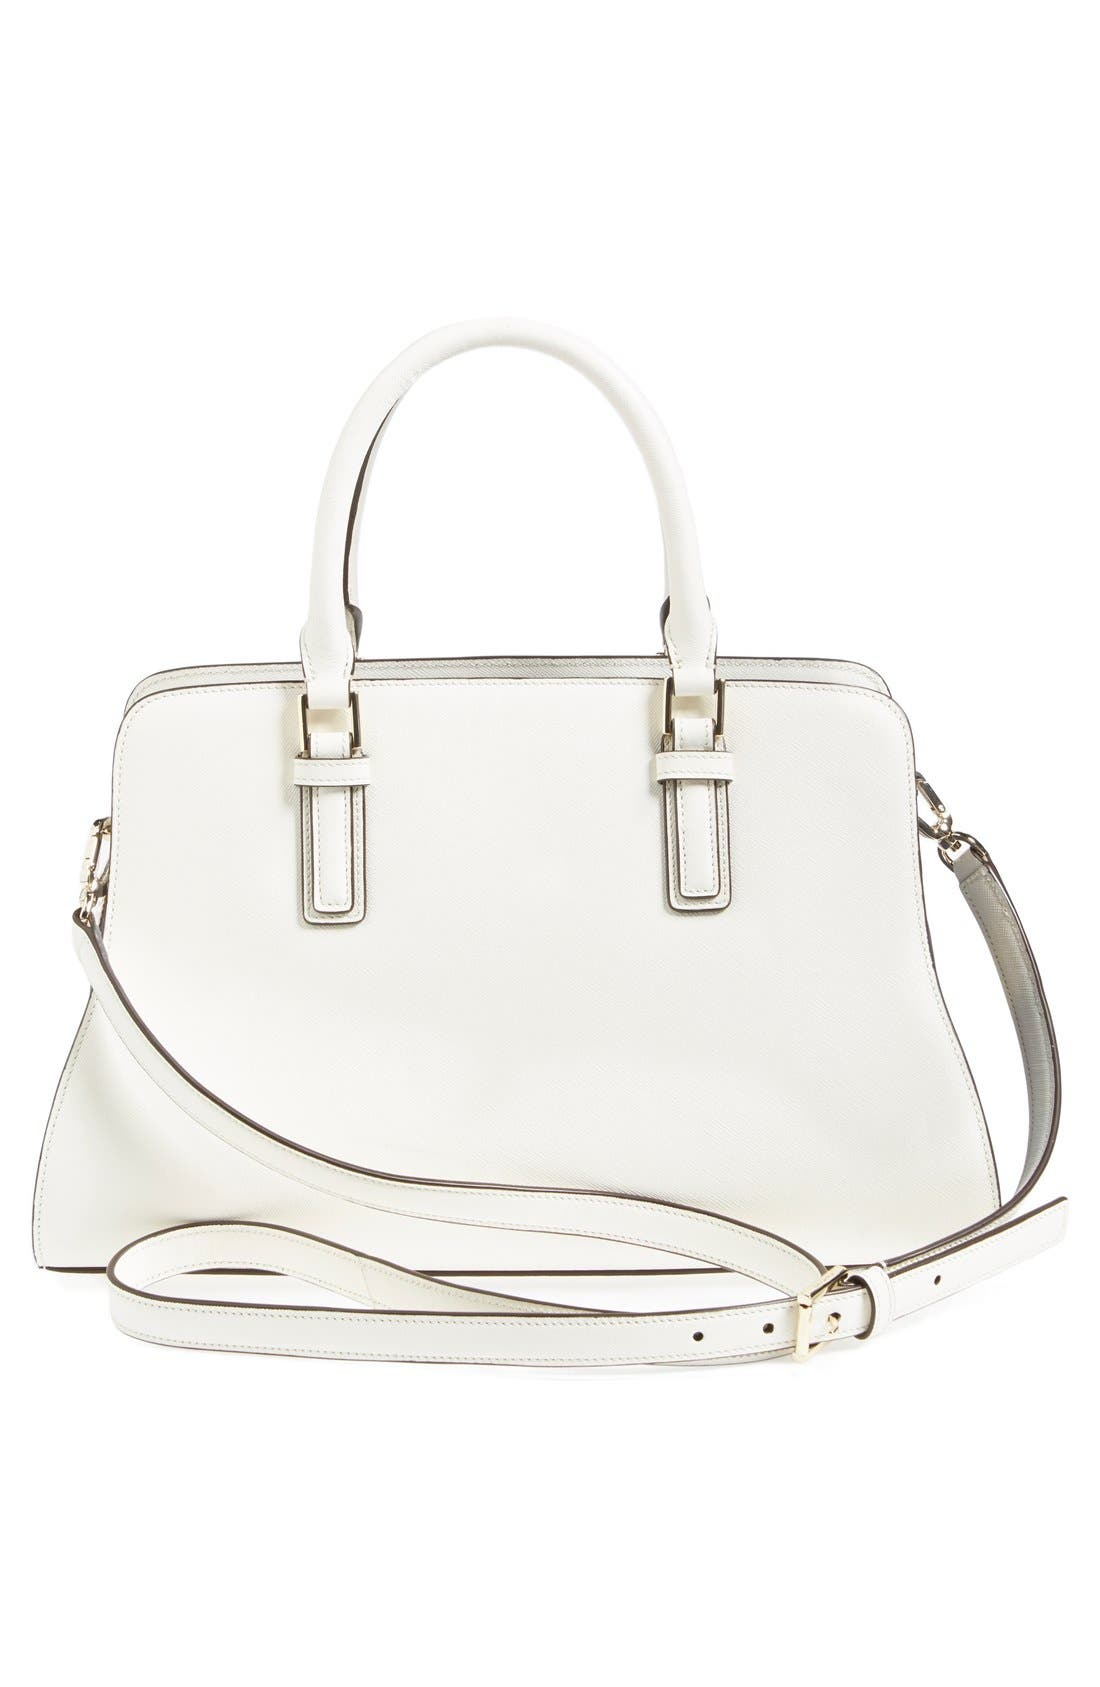 'Robinson - Curved' Leather Satchel,                             Alternate thumbnail 5, color,                             100